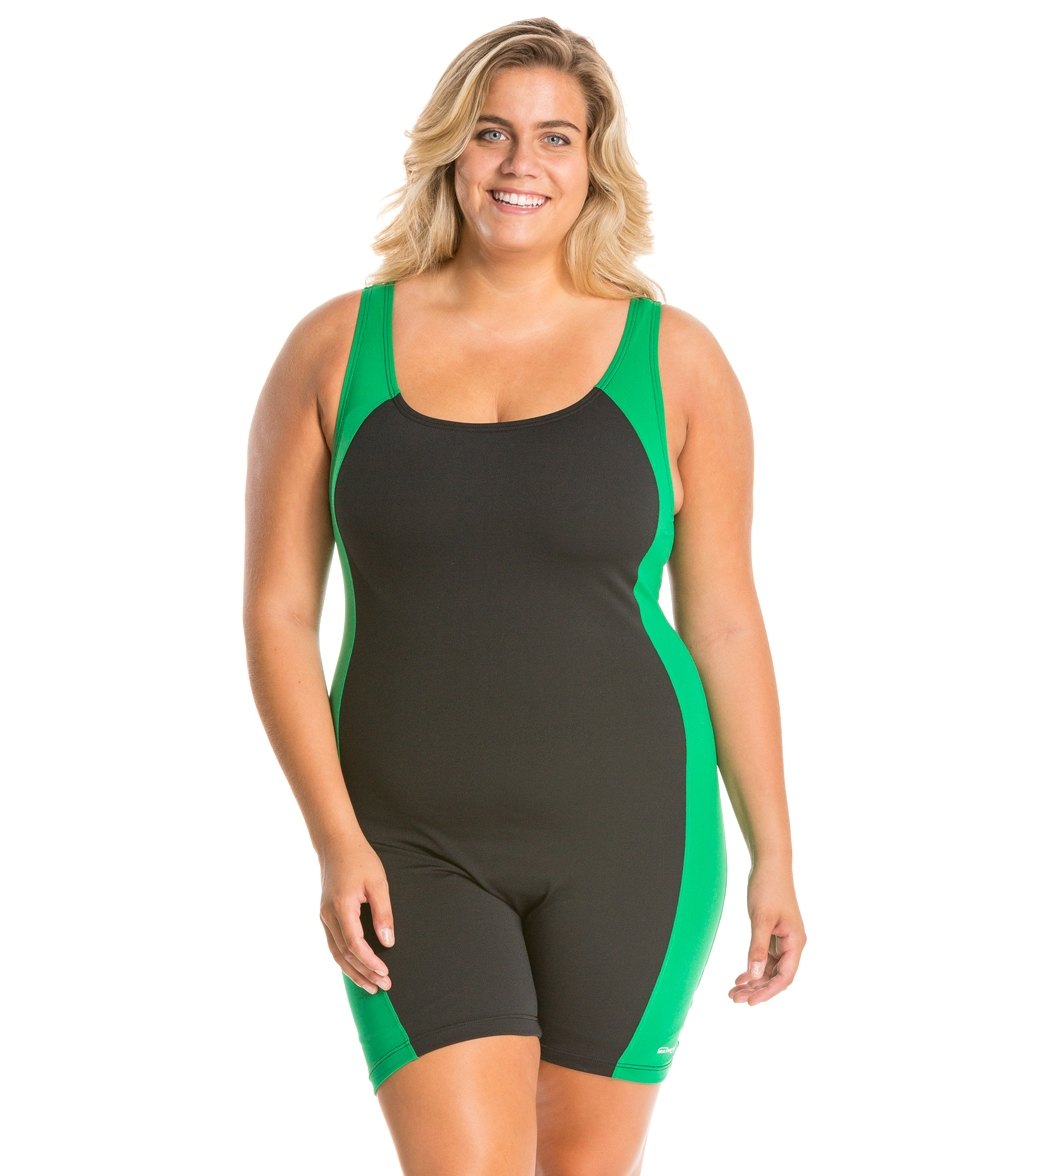 Plus Size Swimwear, Swimsuits, & Bathing Suits at SwimOutlet.com